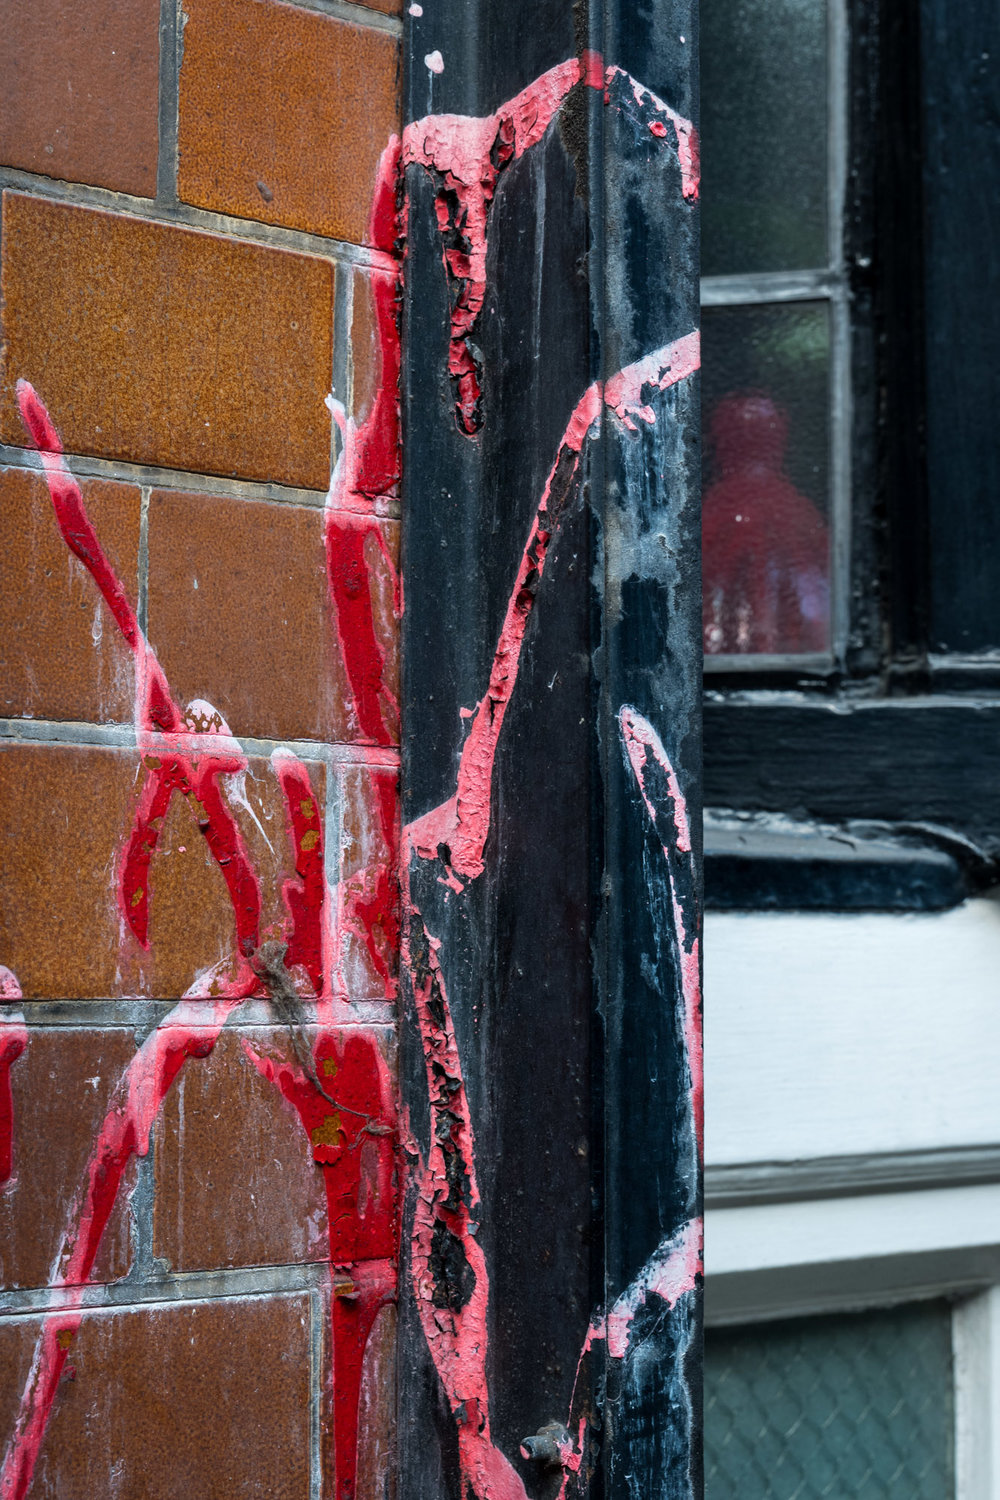 Red Paint on a Wall and Drainpipe